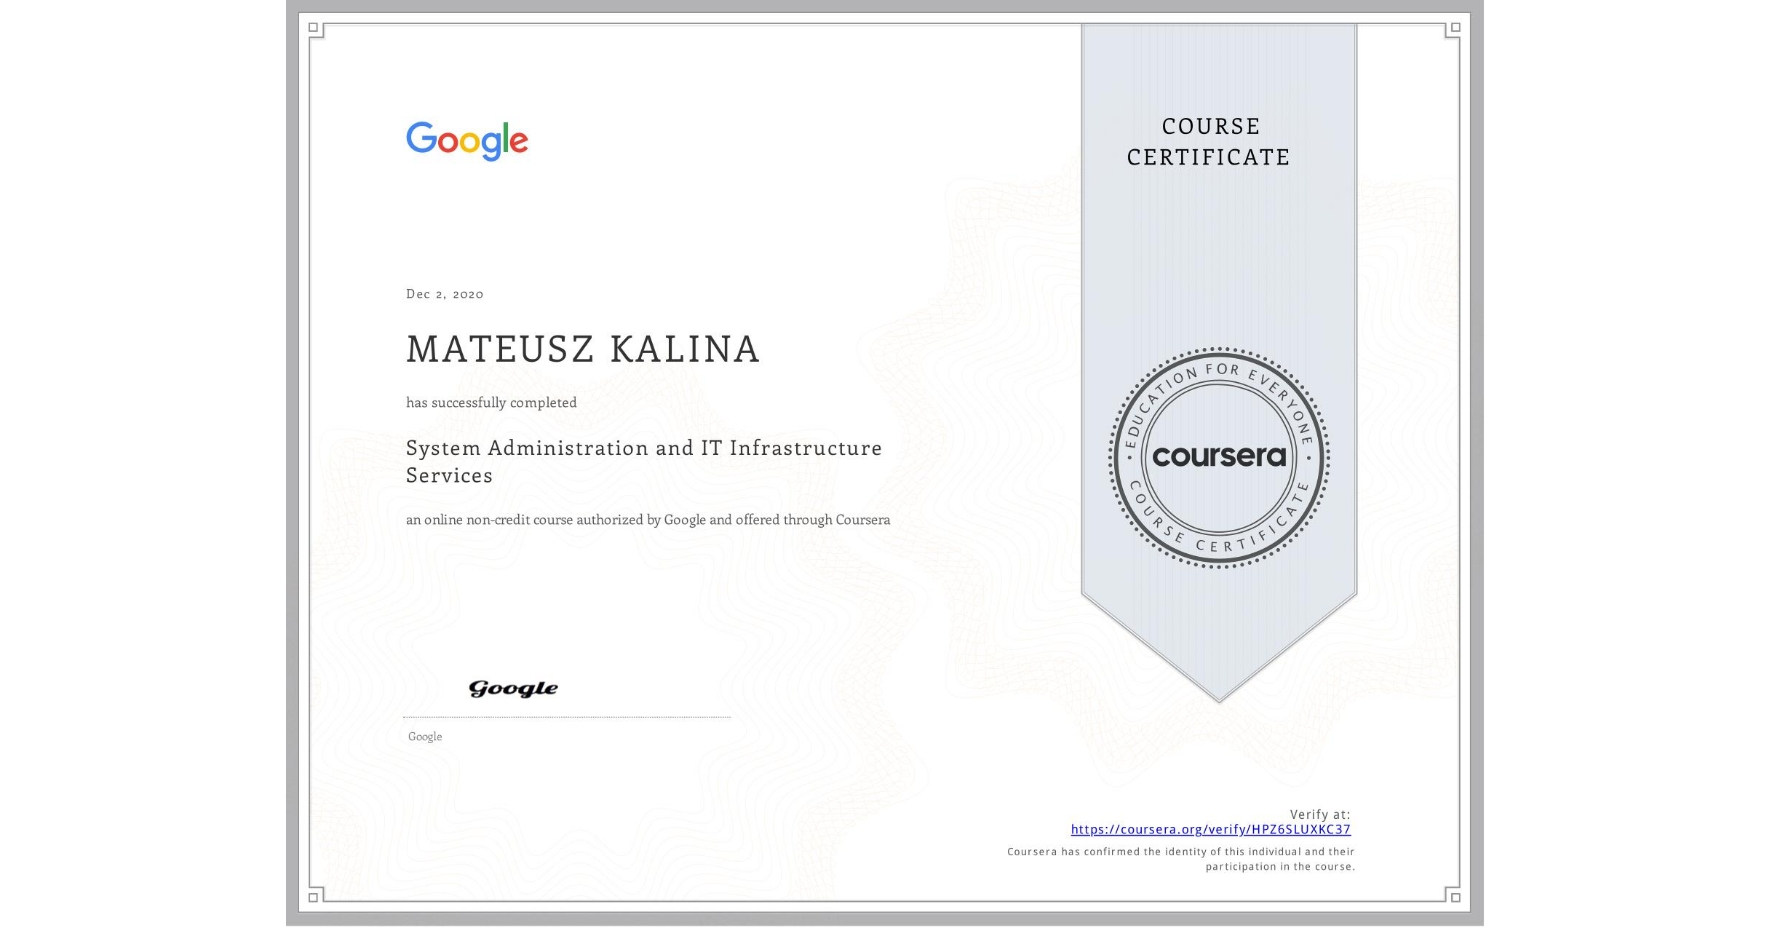 View certificate for MATEUSZ KALINA,  System Administration and IT Infrastructure Services, an online non-credit course authorized by Google and offered through Coursera